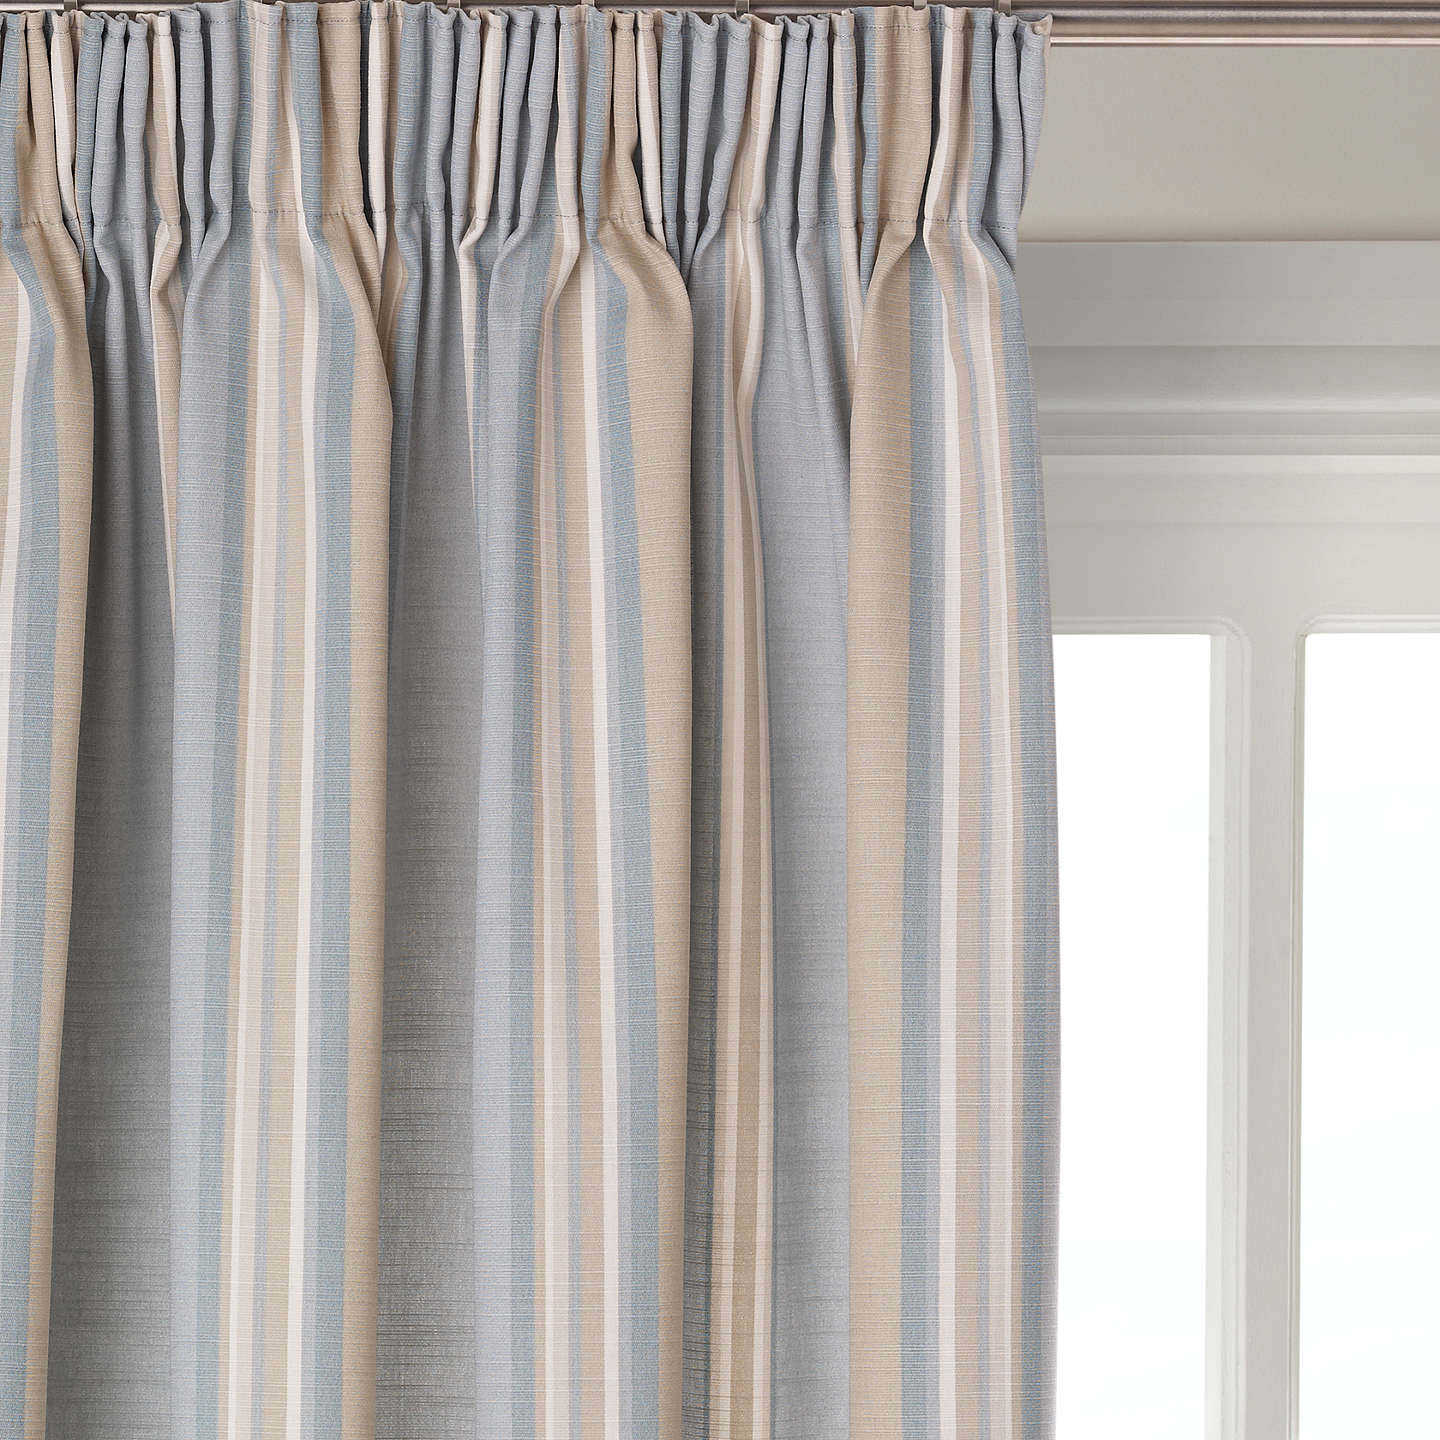 silk prd bq q at lined faux black curtains w diy eyelet cm departments b grey l blackout striped dill